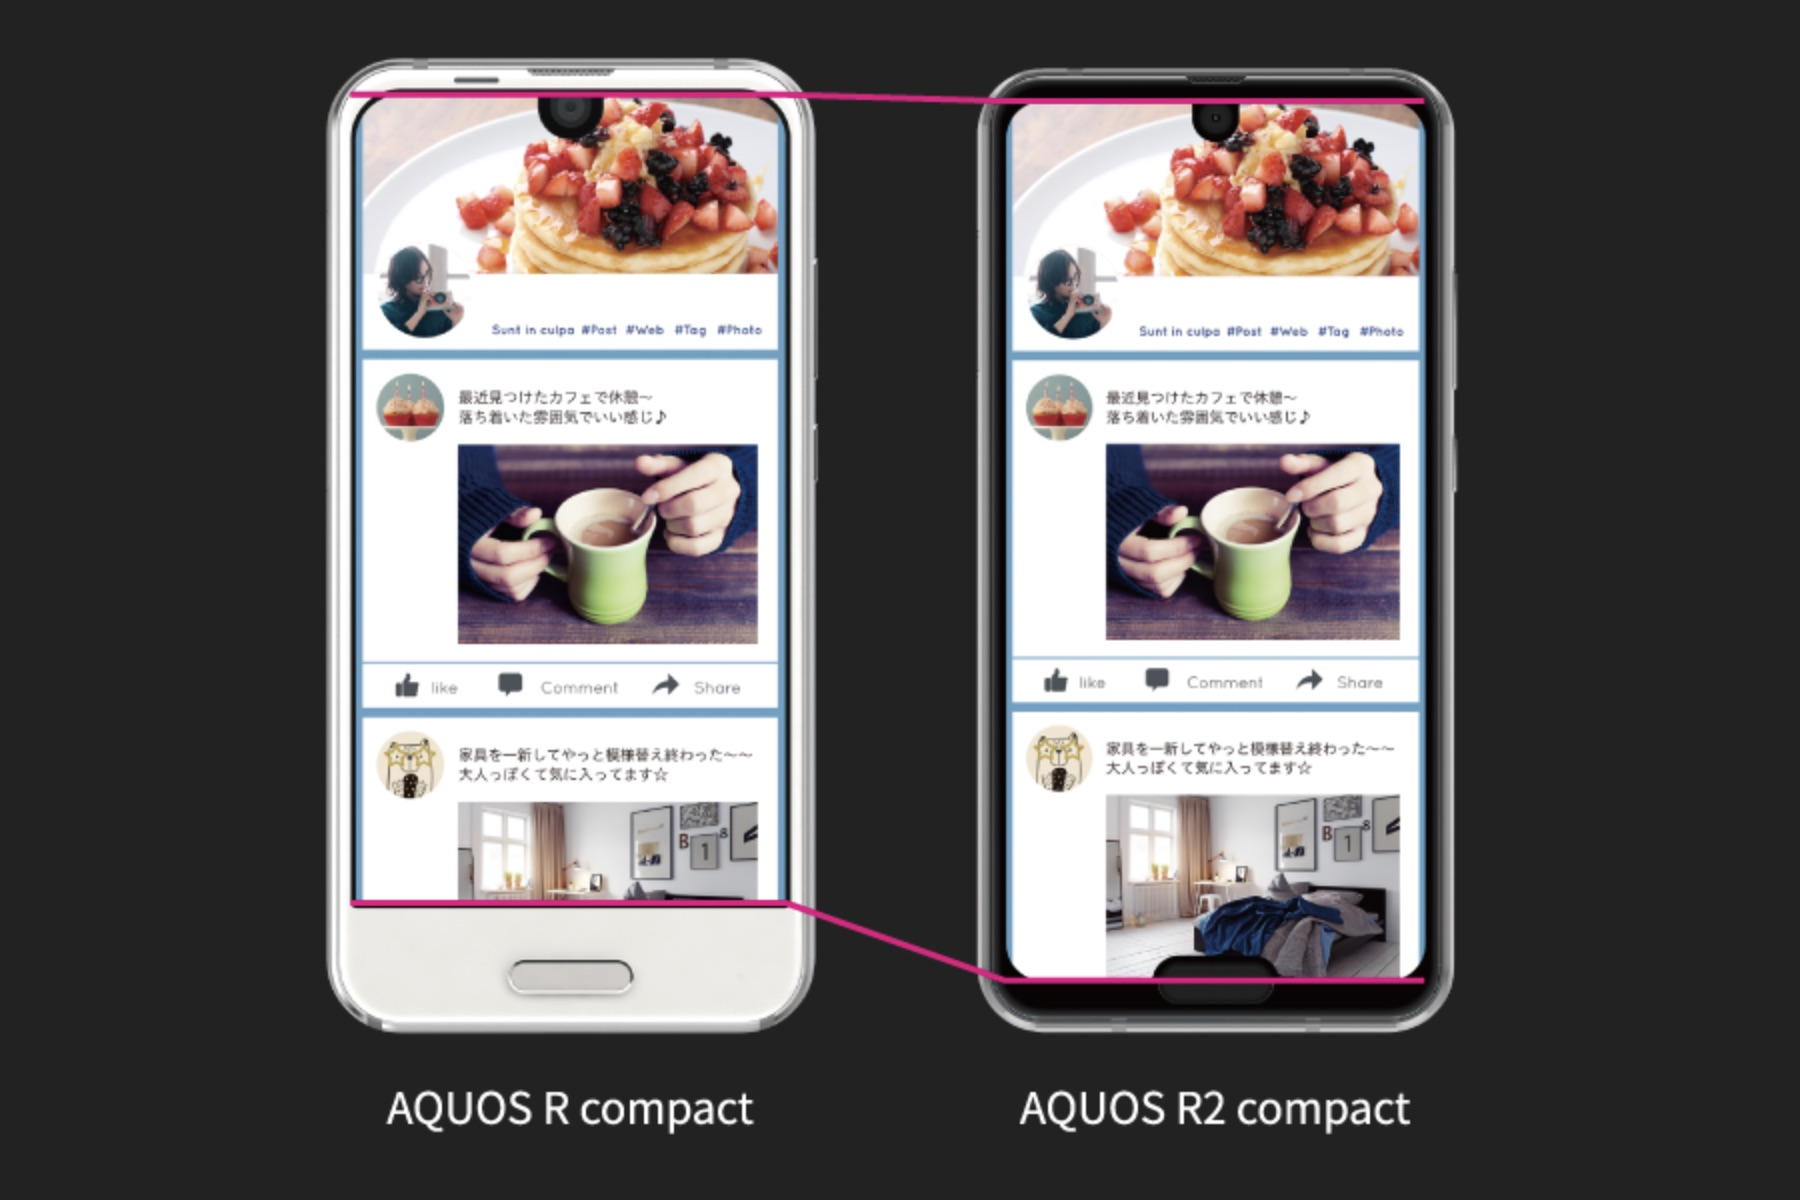 Sharp Aquos R compact & Aquos R2 compact comparison